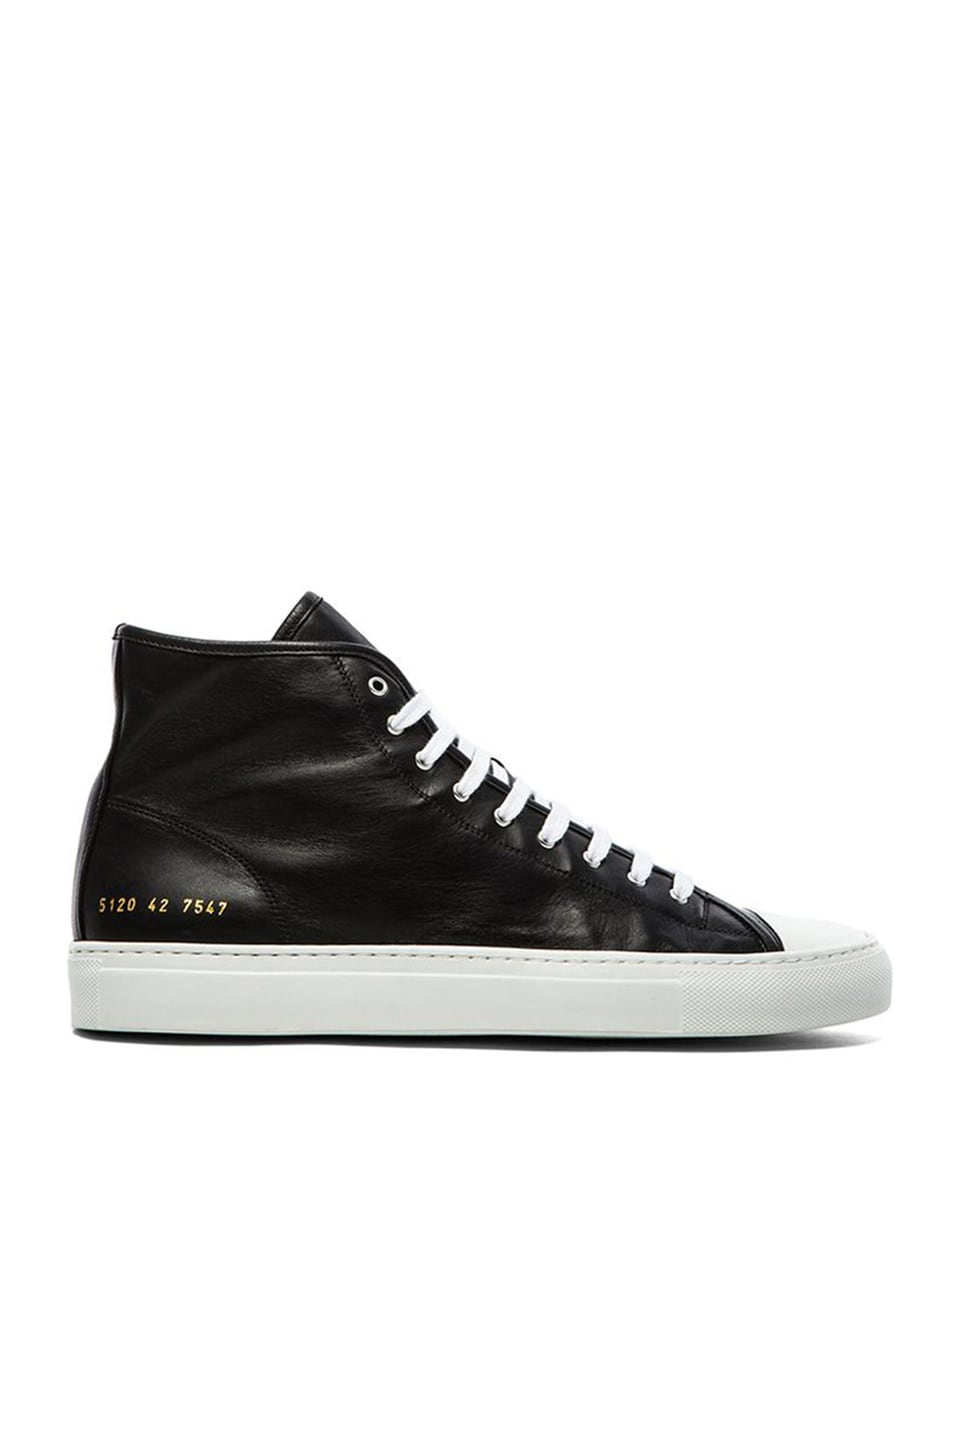 Best Seller Cheap Online Clearance From China COMMON PROJECTS & Tournament High Cap Toe Sneakers MWzDLg